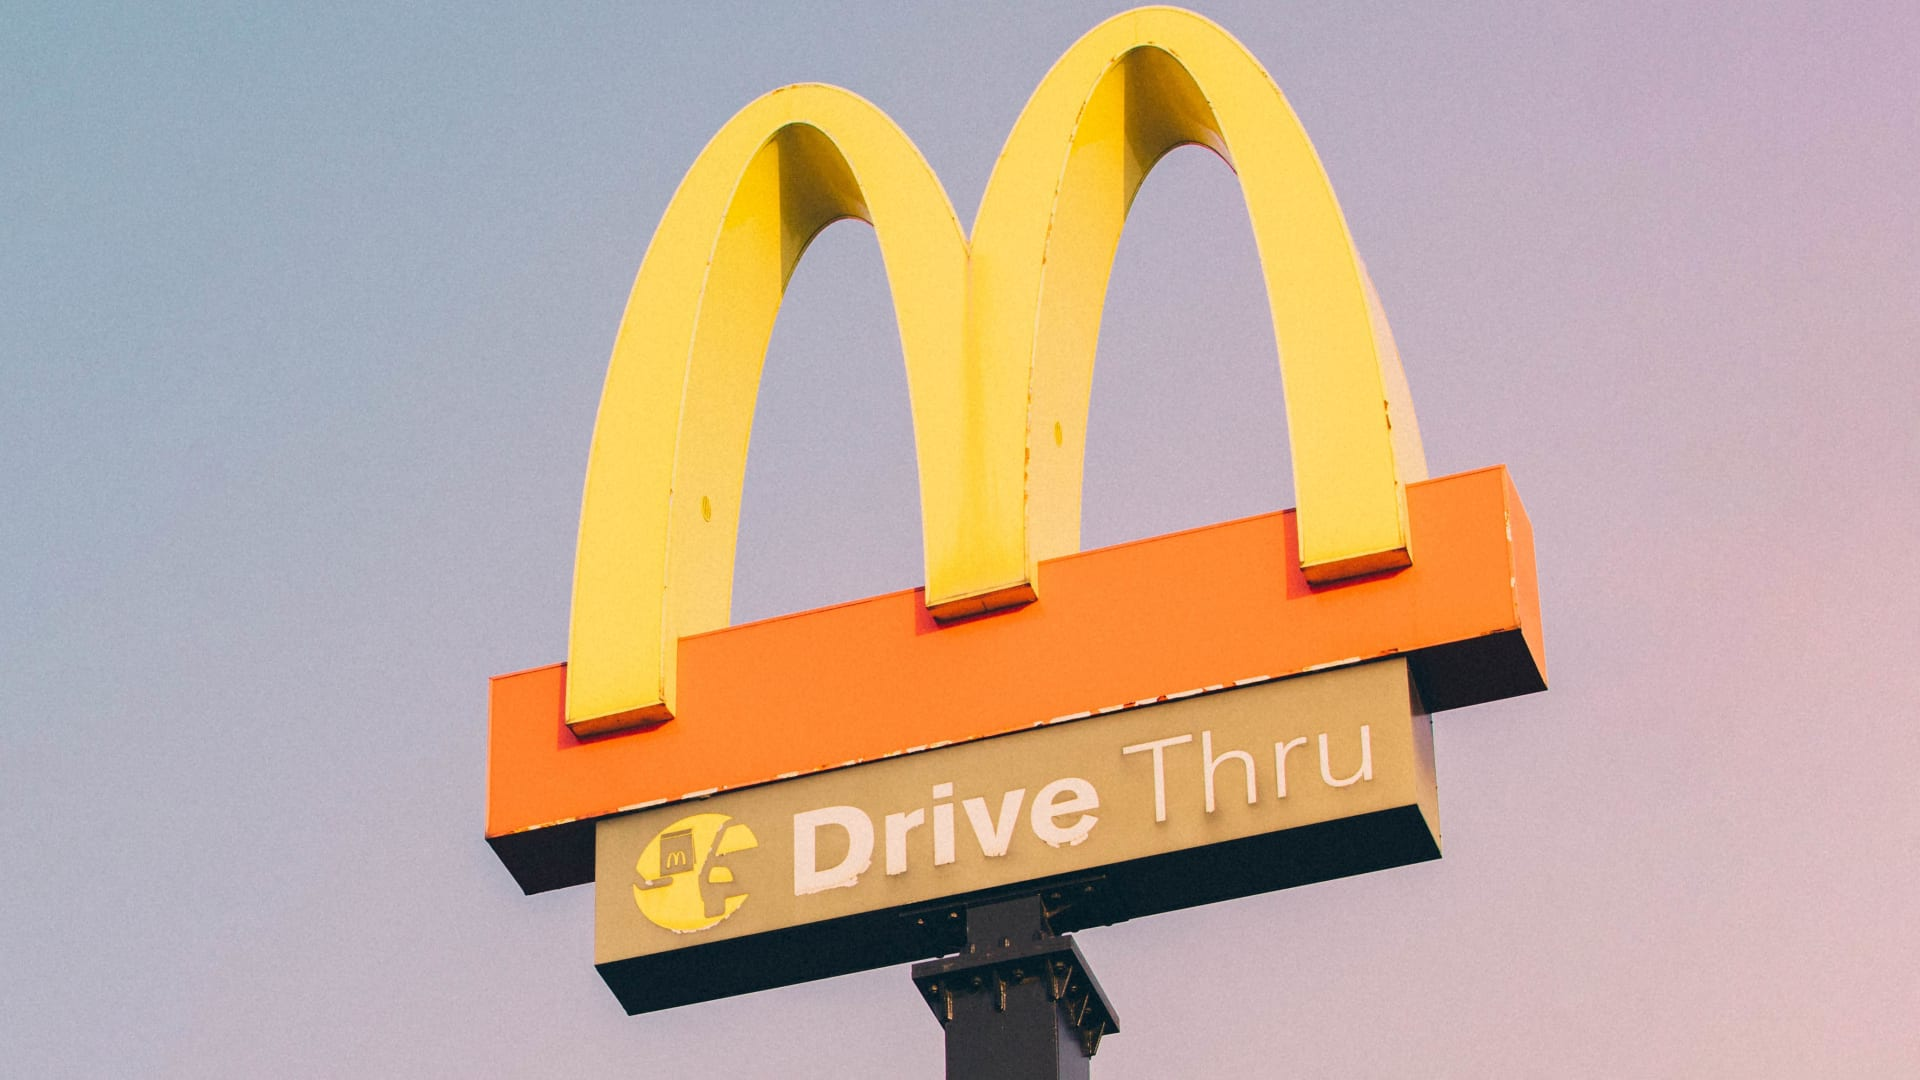 McDonald's Just Made a Big Announcement. Some Customers Have Wanted This for 7 Years (at Least)